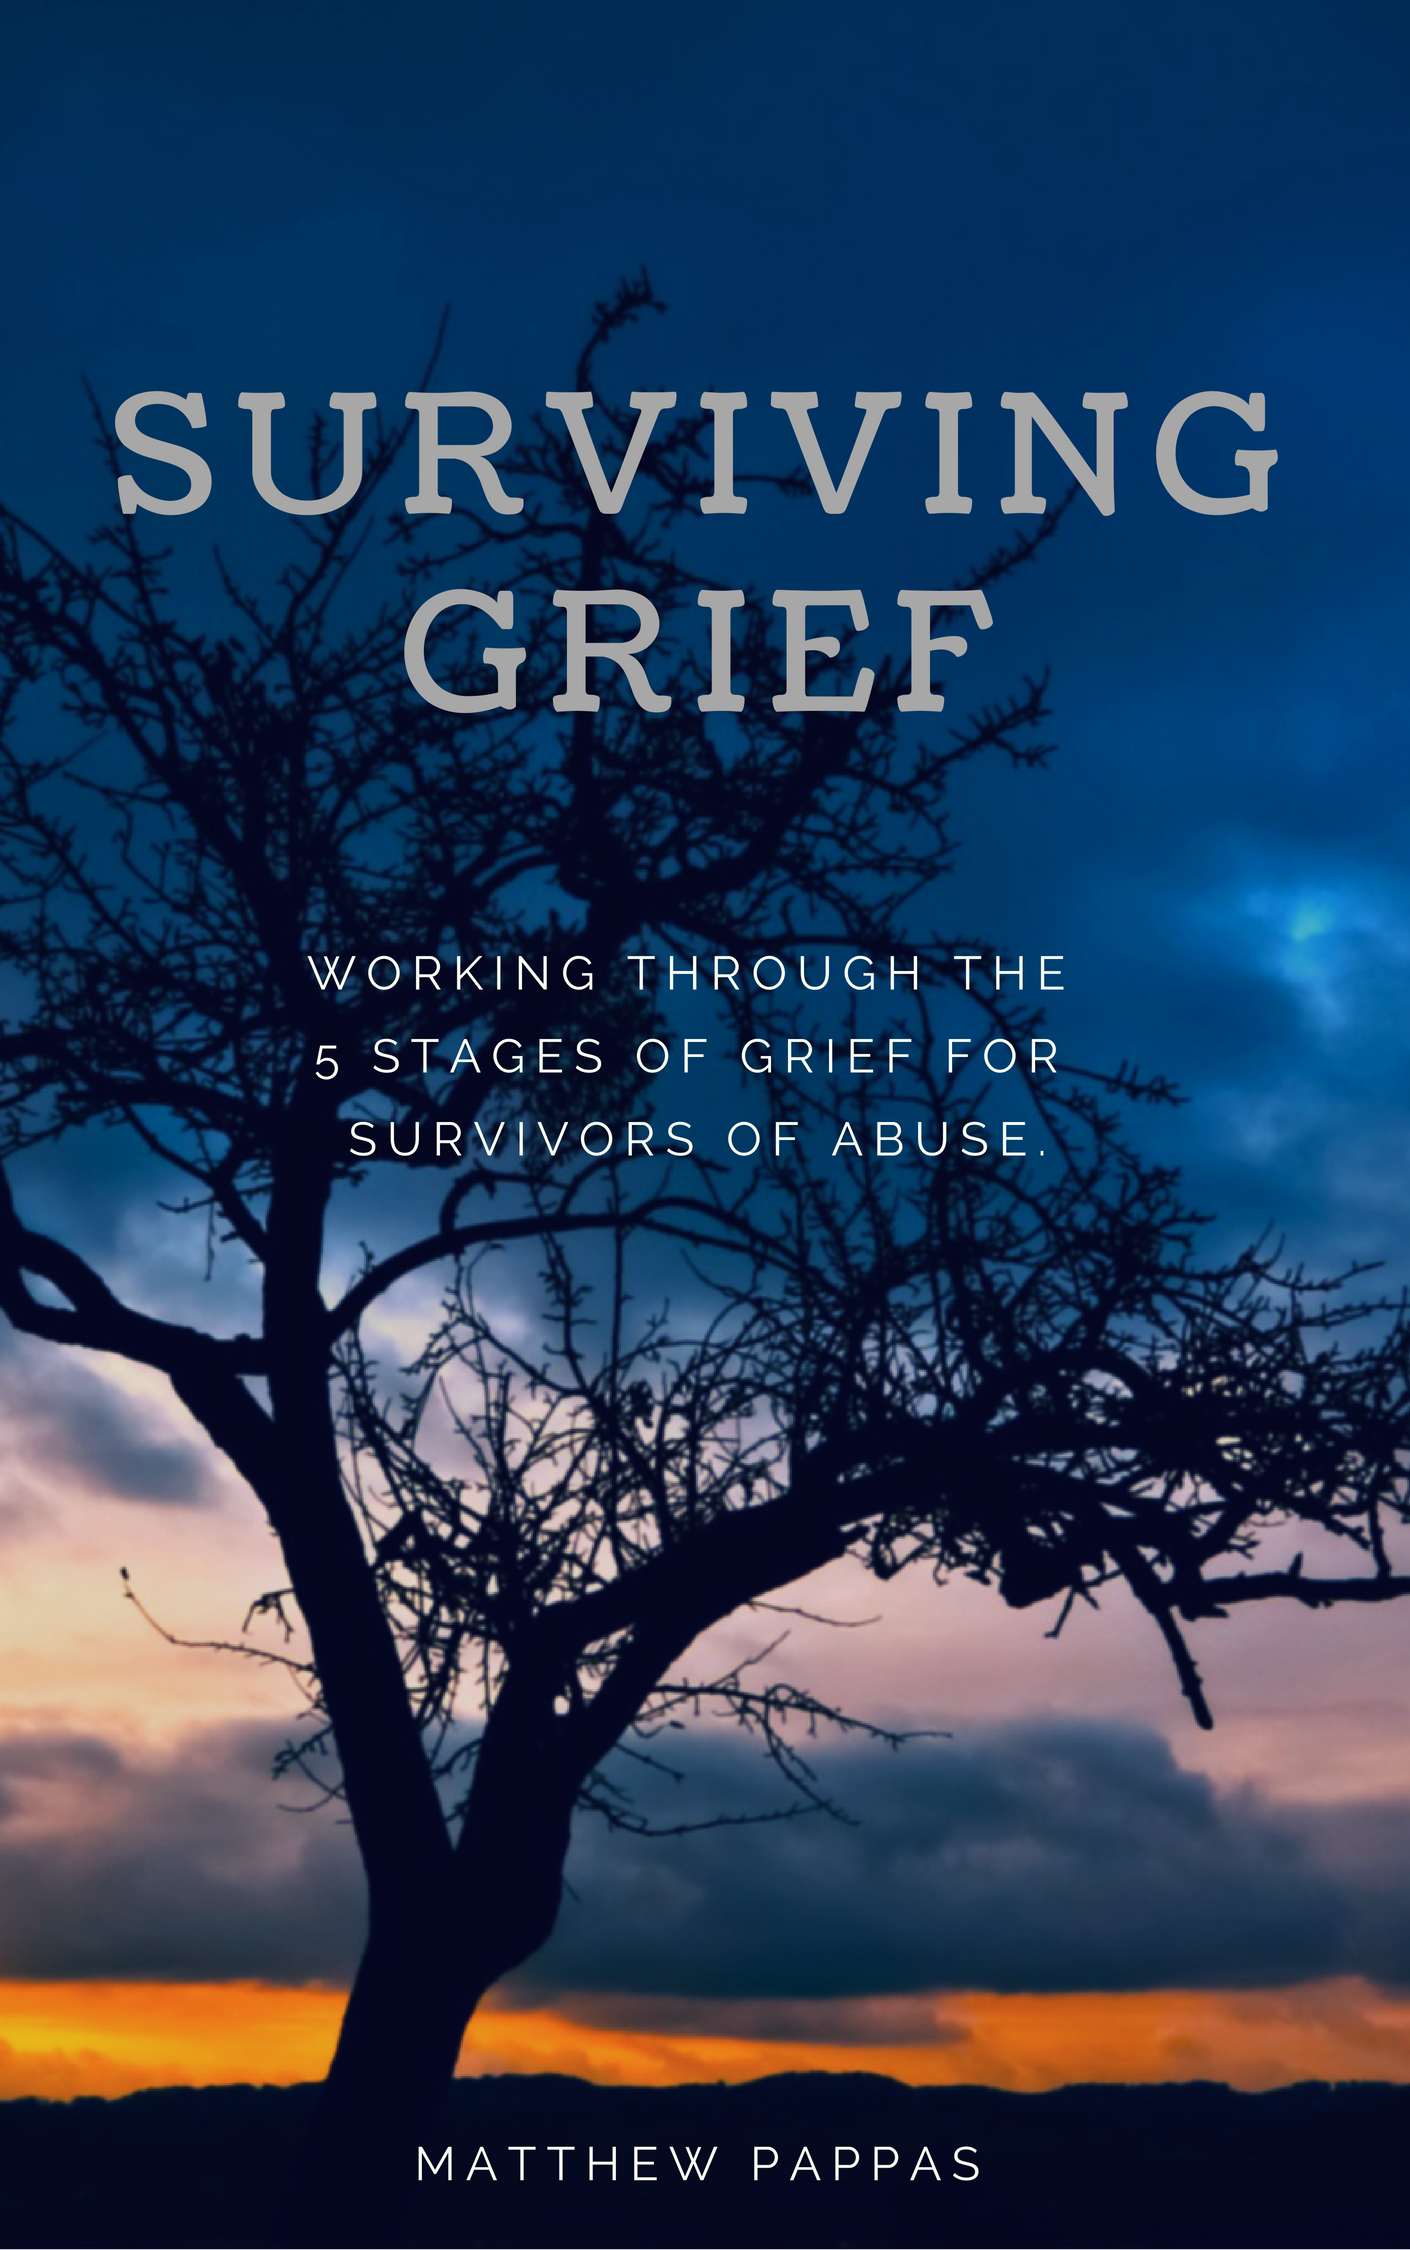 Surviving Grief - The 5 Stages of Grief for Abuse Survivors - eBook